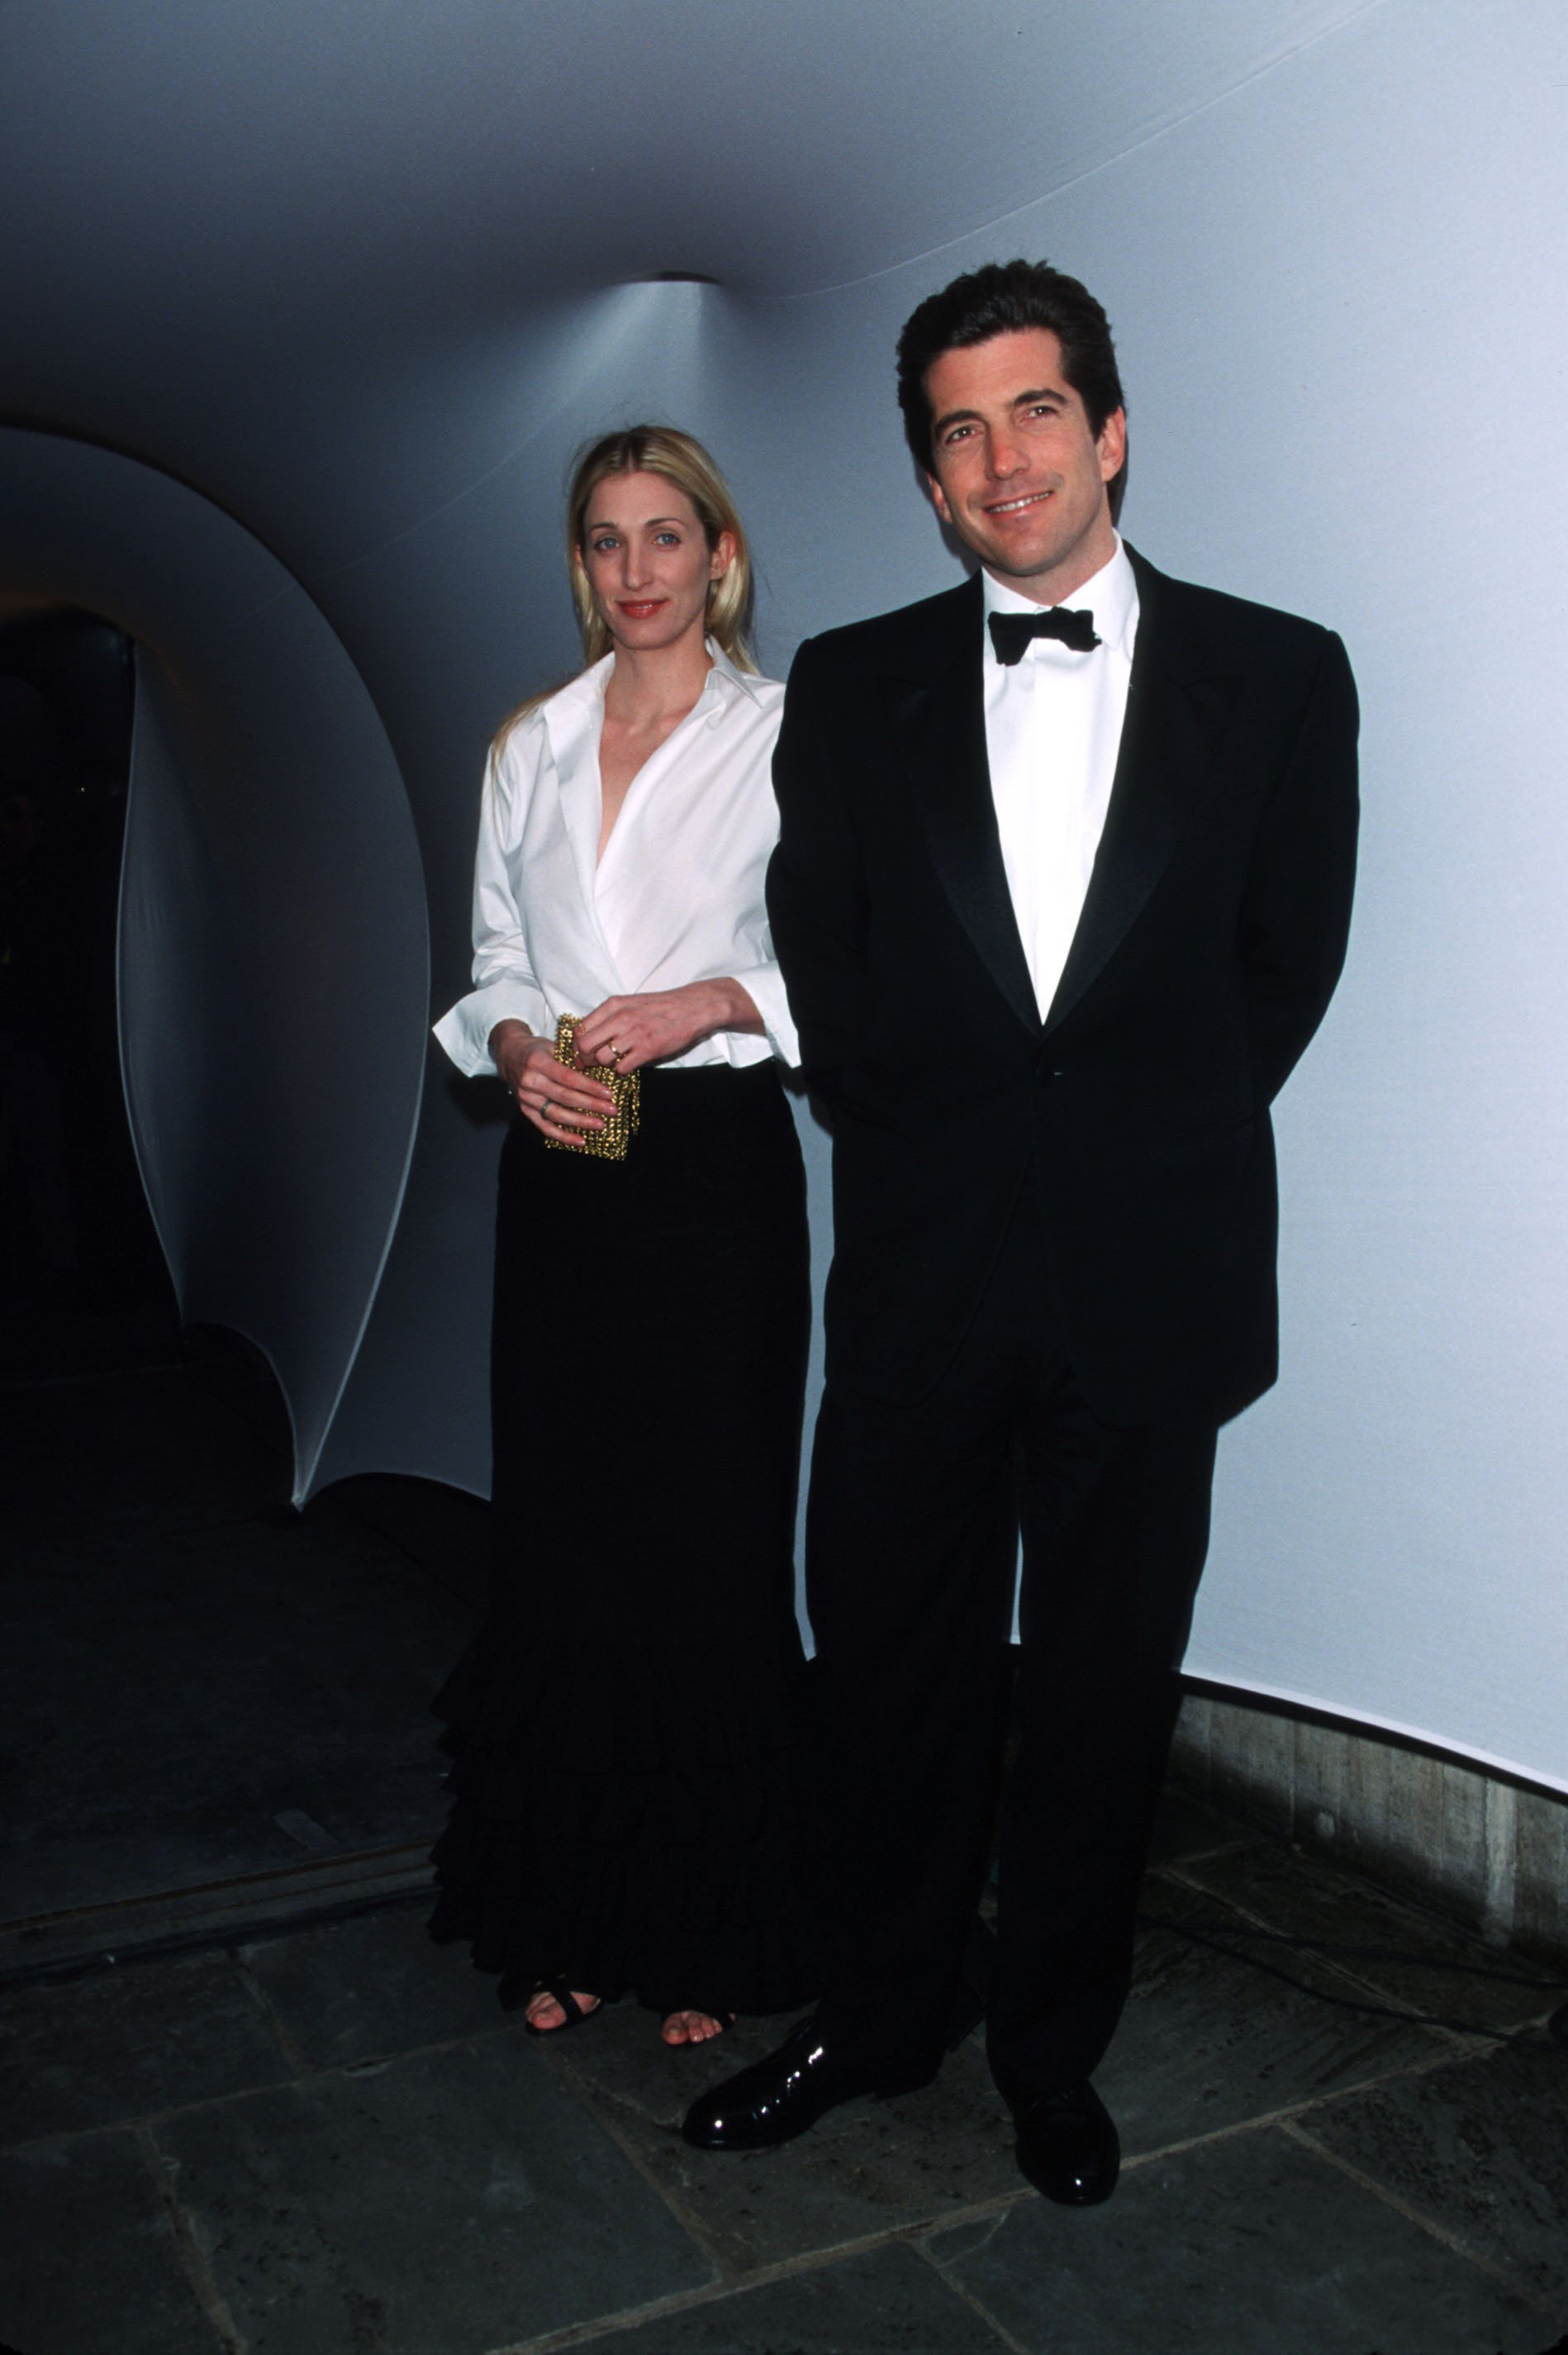 John F. Kennedy, Jr. and his wife Carolyn Bessette pose for a picture at the Annual Fundraising Gala on March 9, 1999, in New York City. | Source: Getty Images.